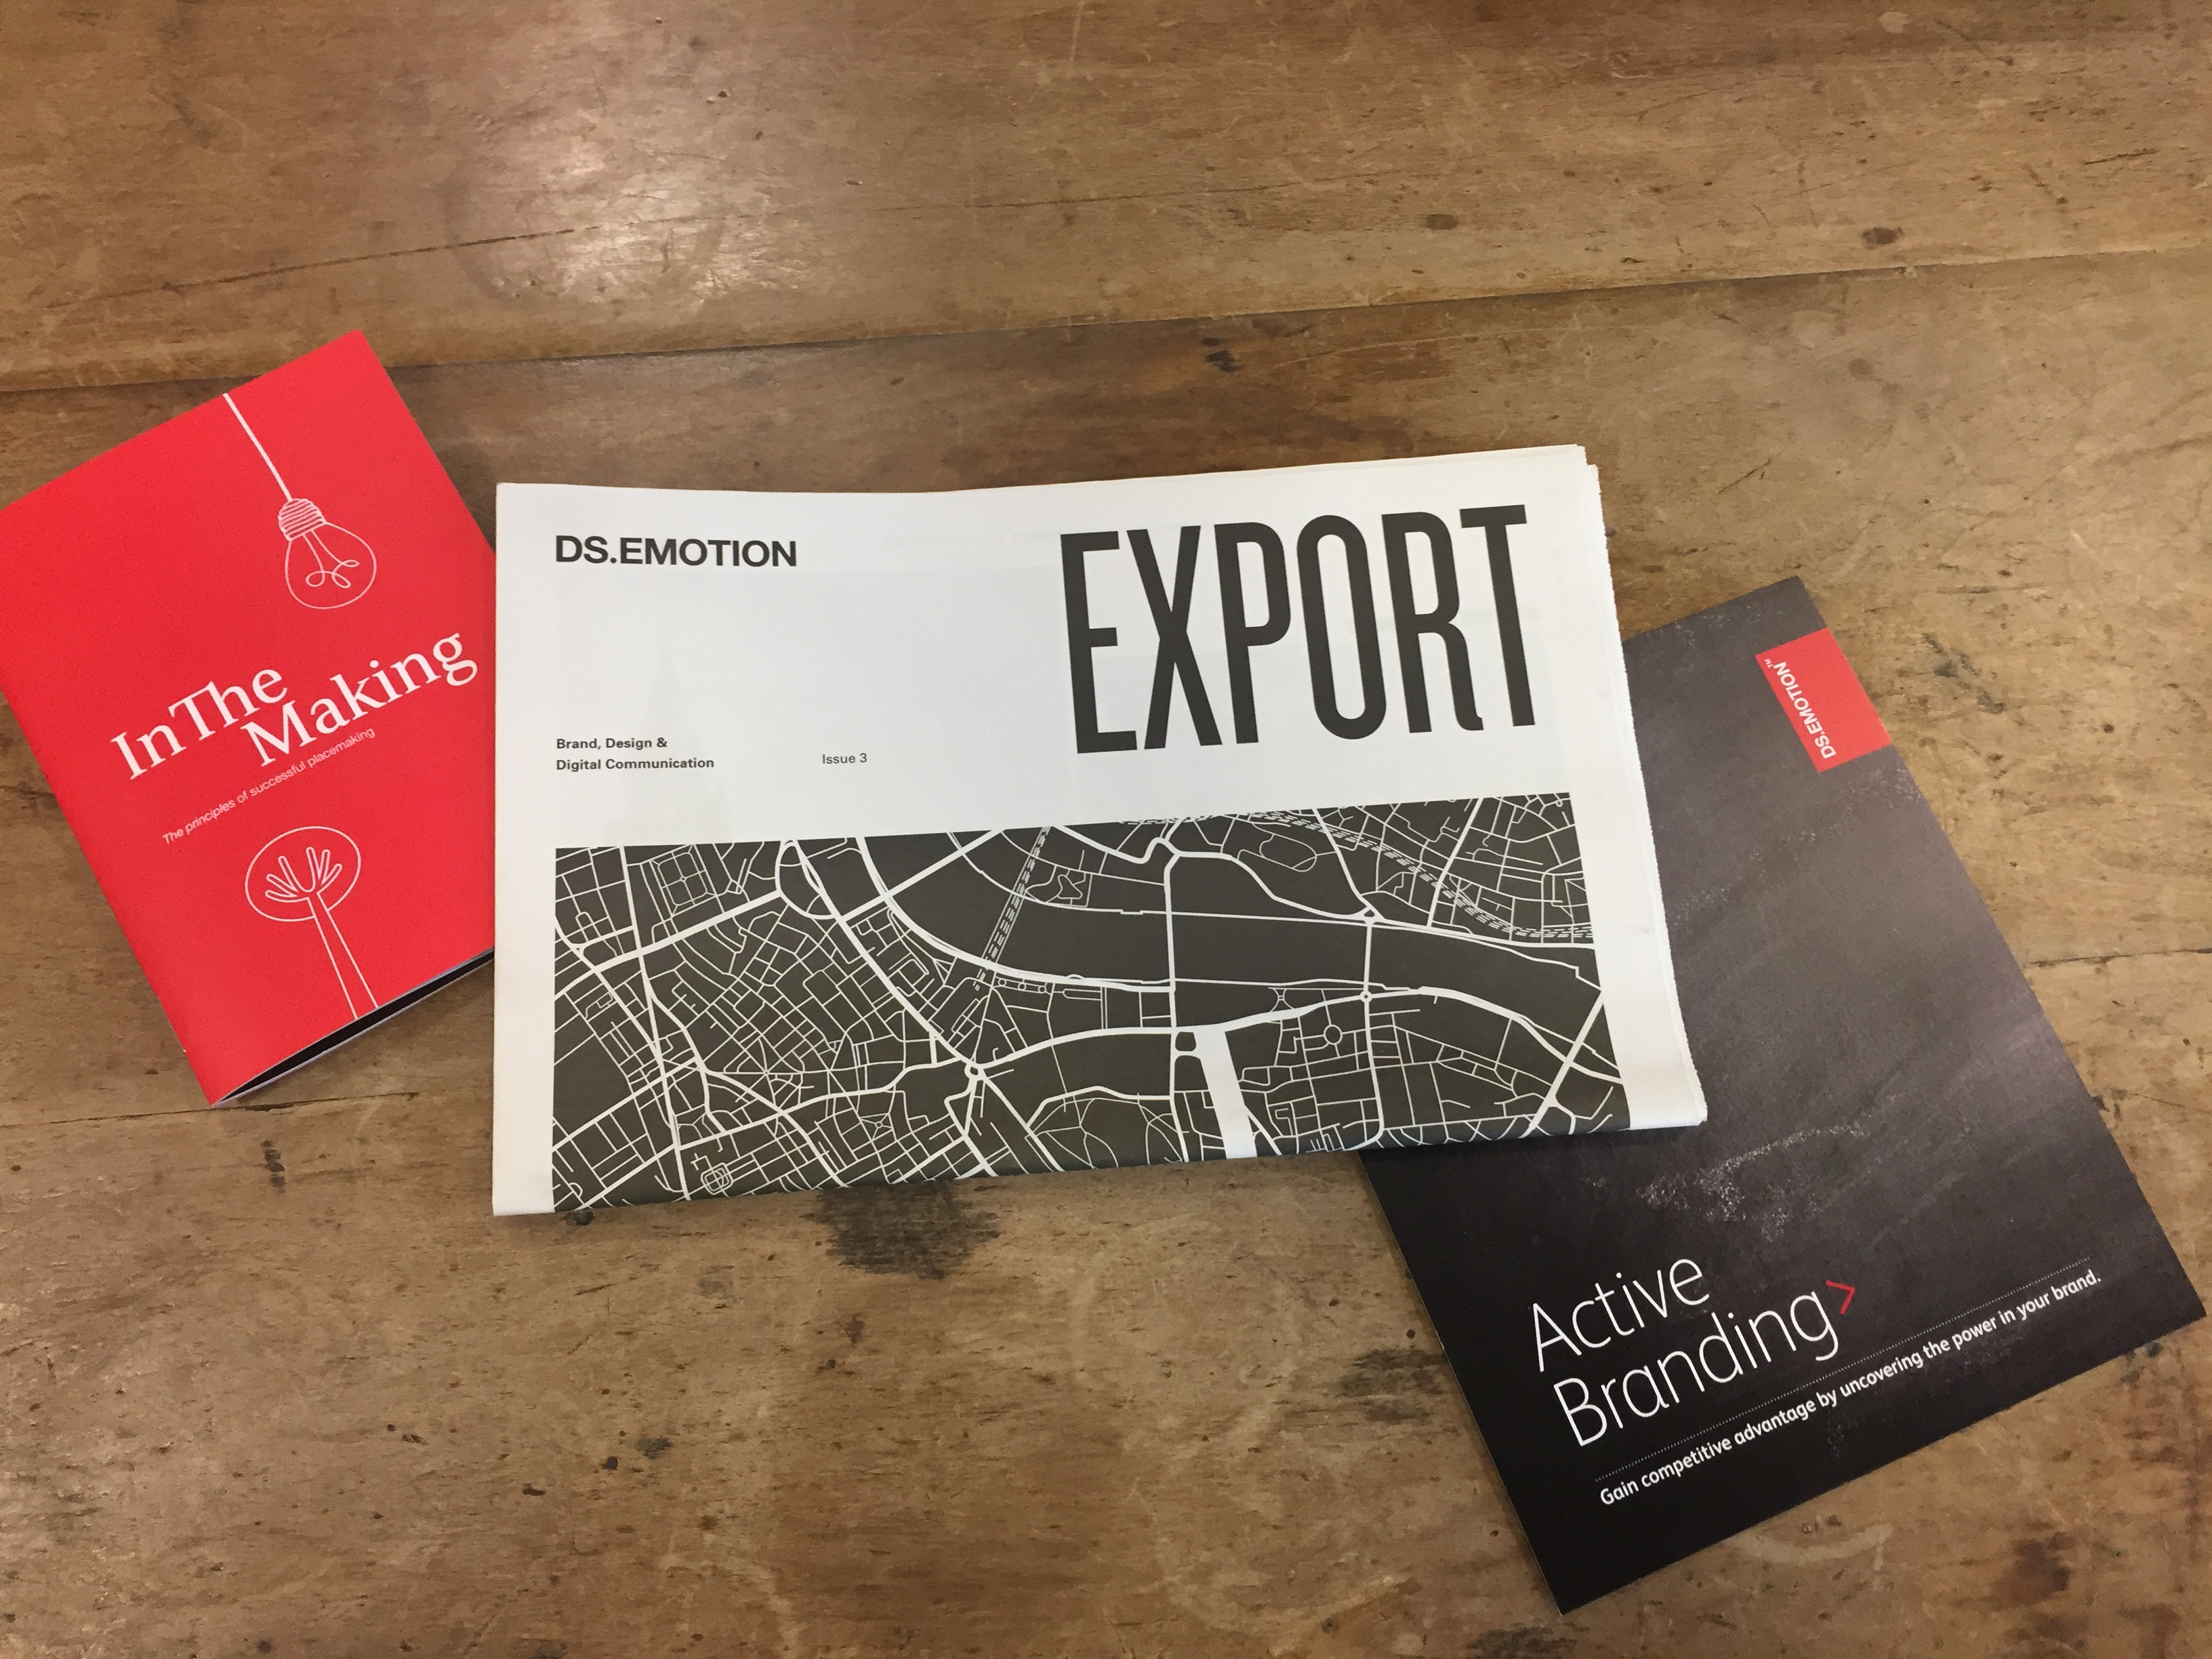 EXPORT – Issue 3